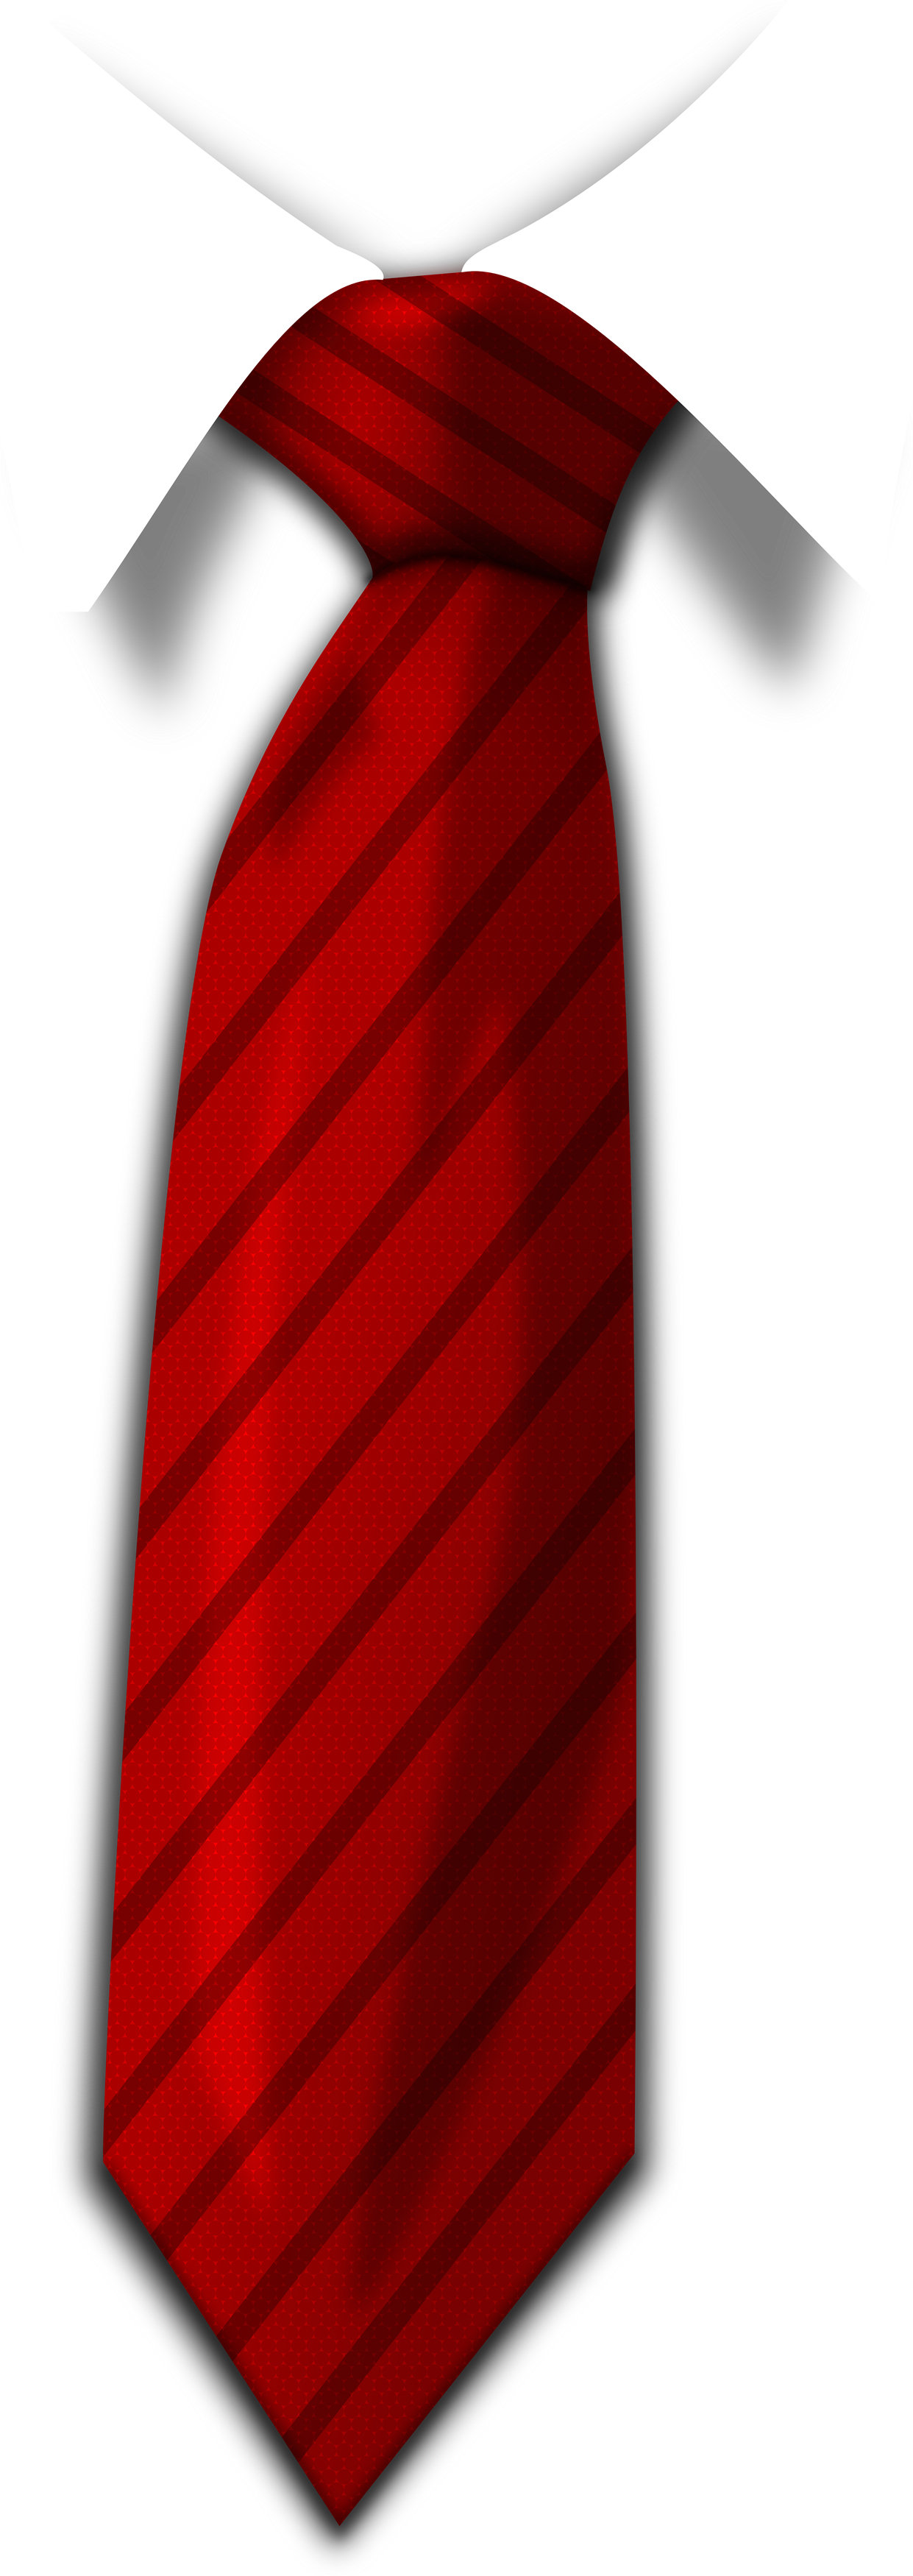 Red Tie PNG Image